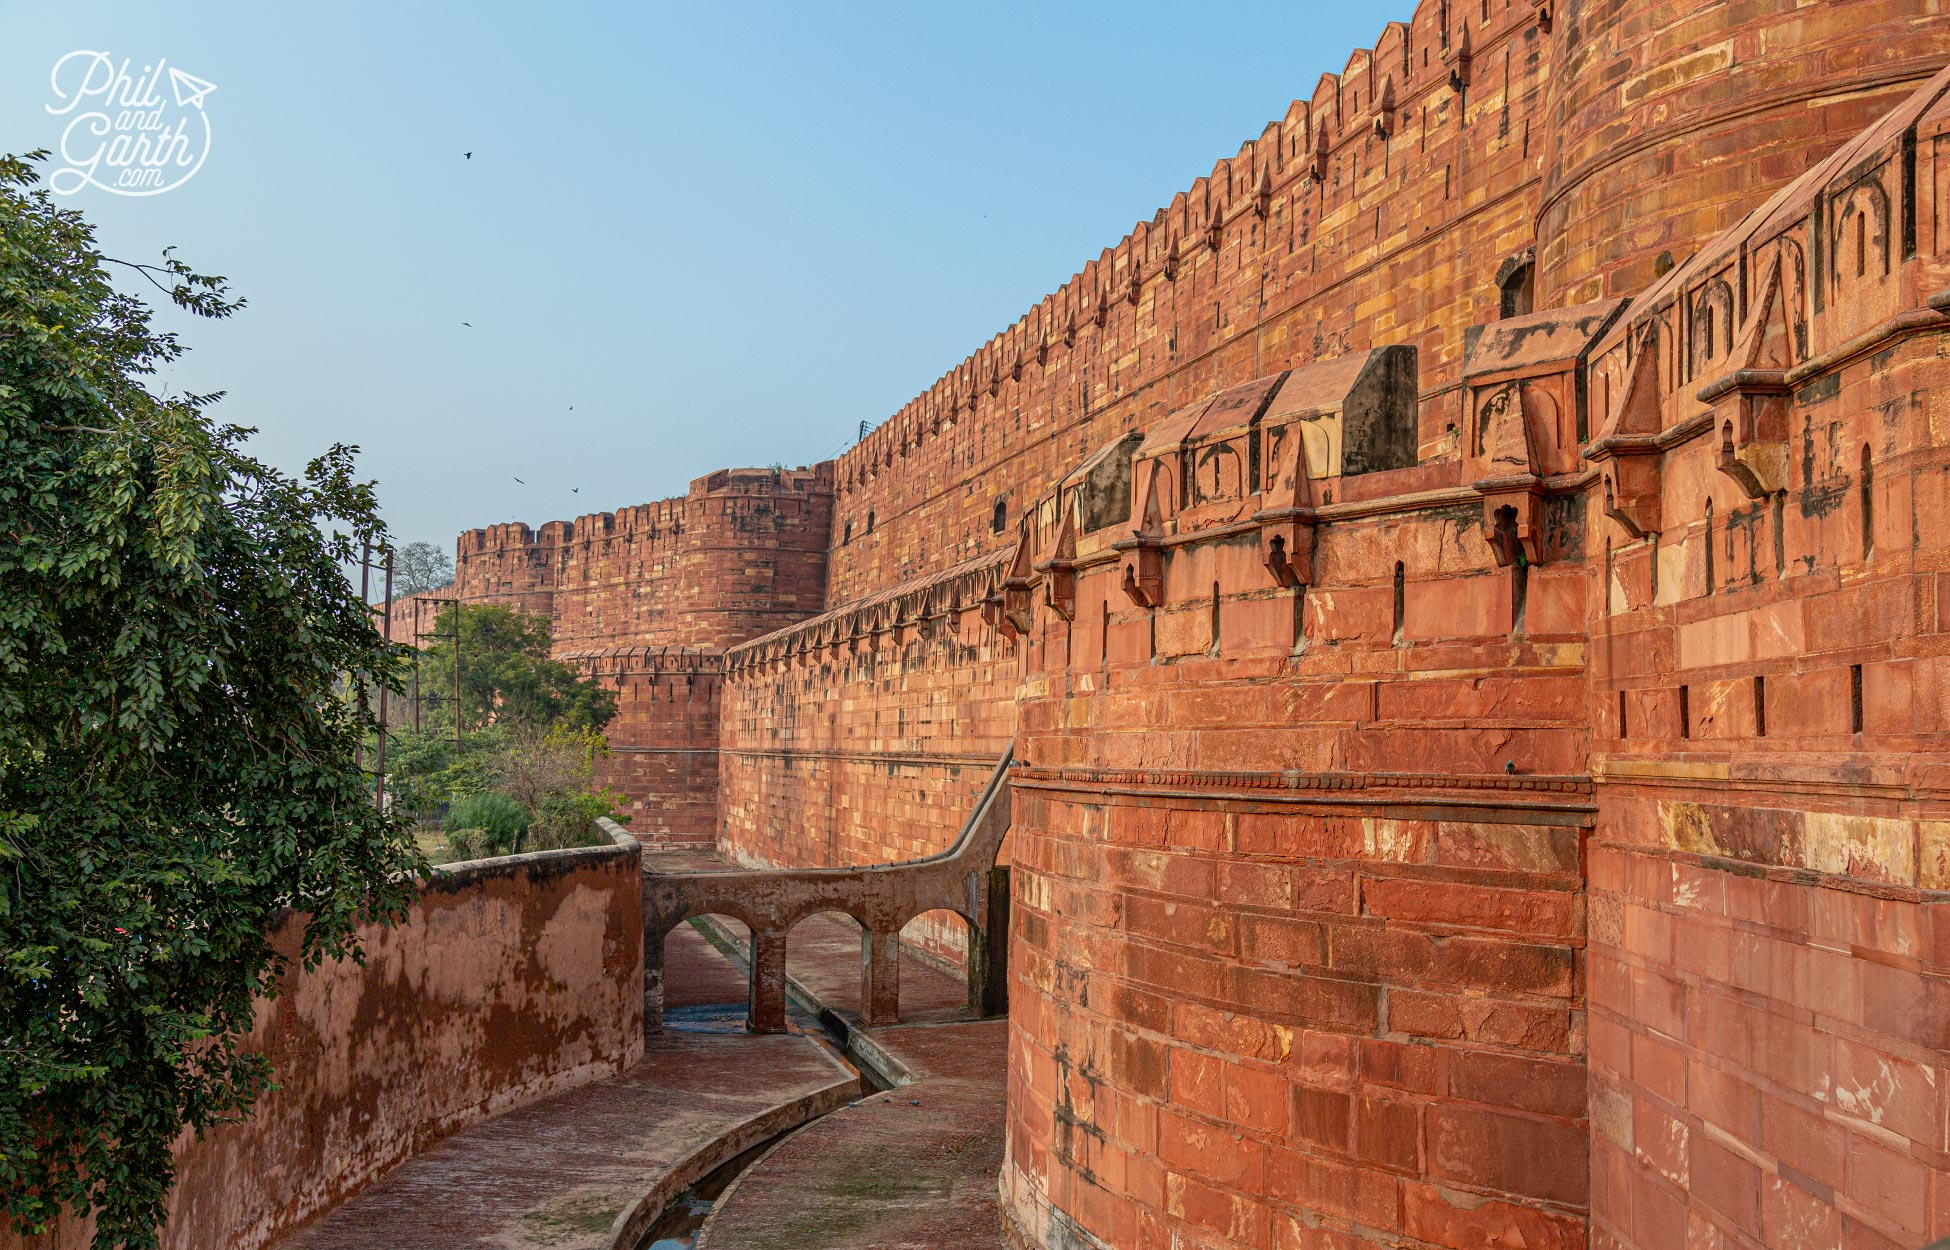 Part of the fort is still used by the Indian Army and is off limits to the public